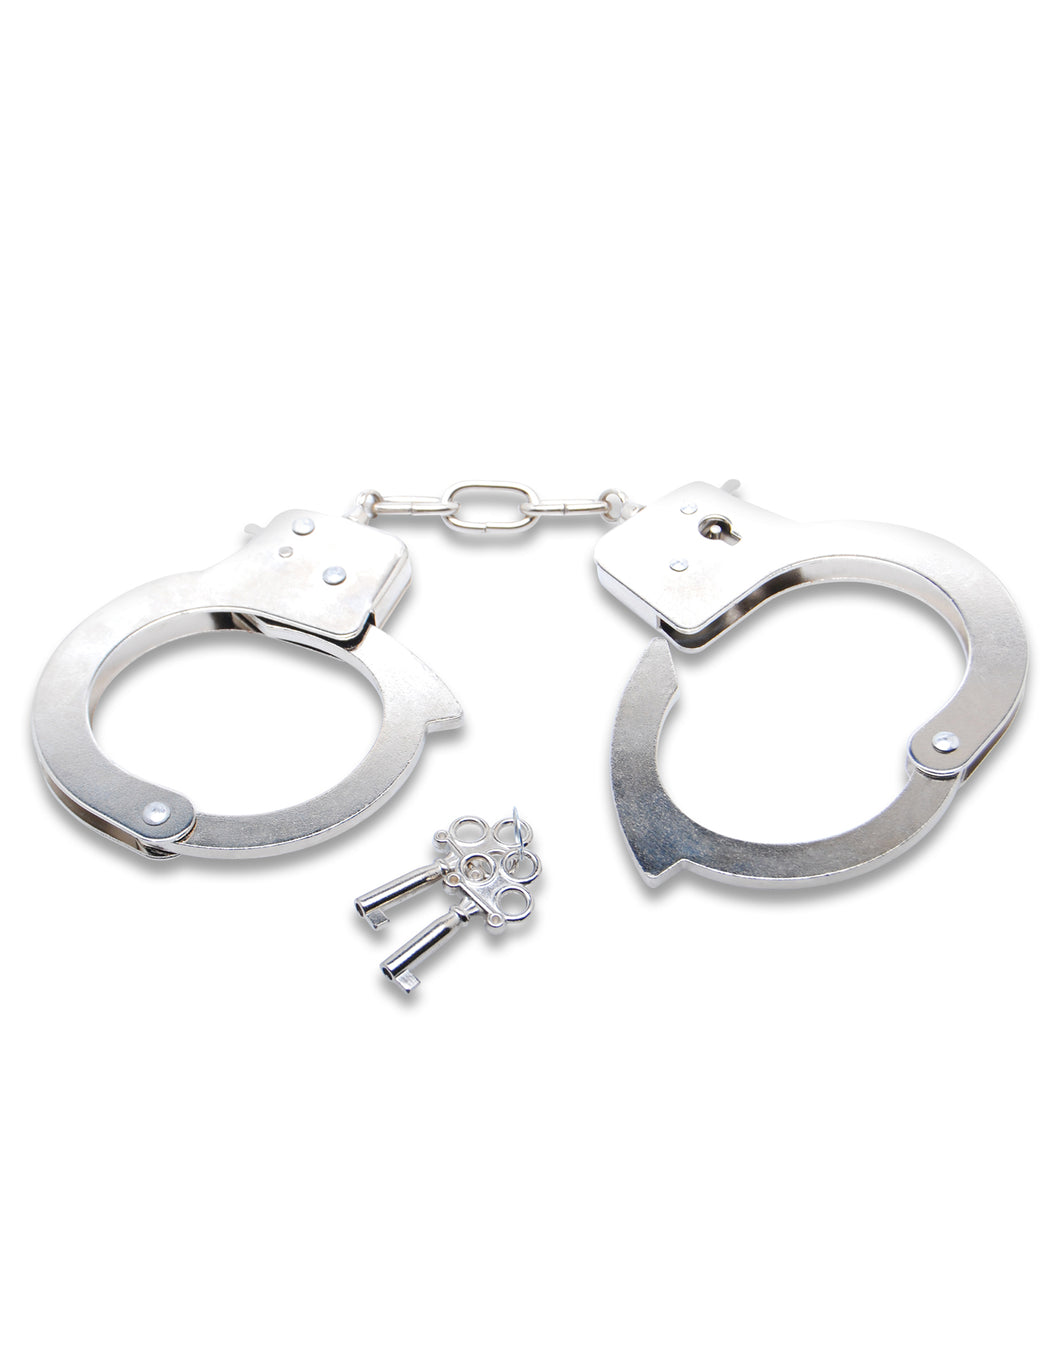 Official Handcuffs - My sheree and More